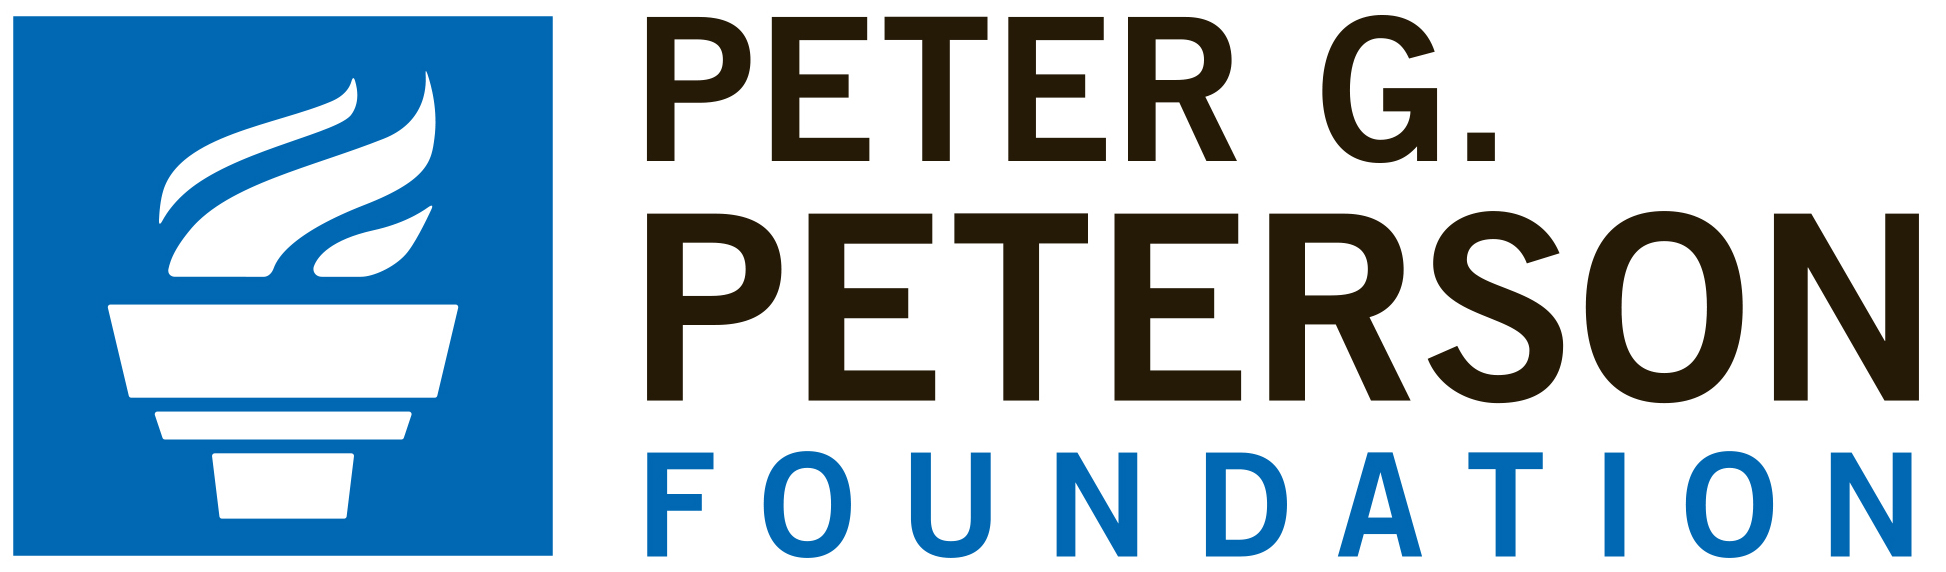 PeterGPeterson_logo